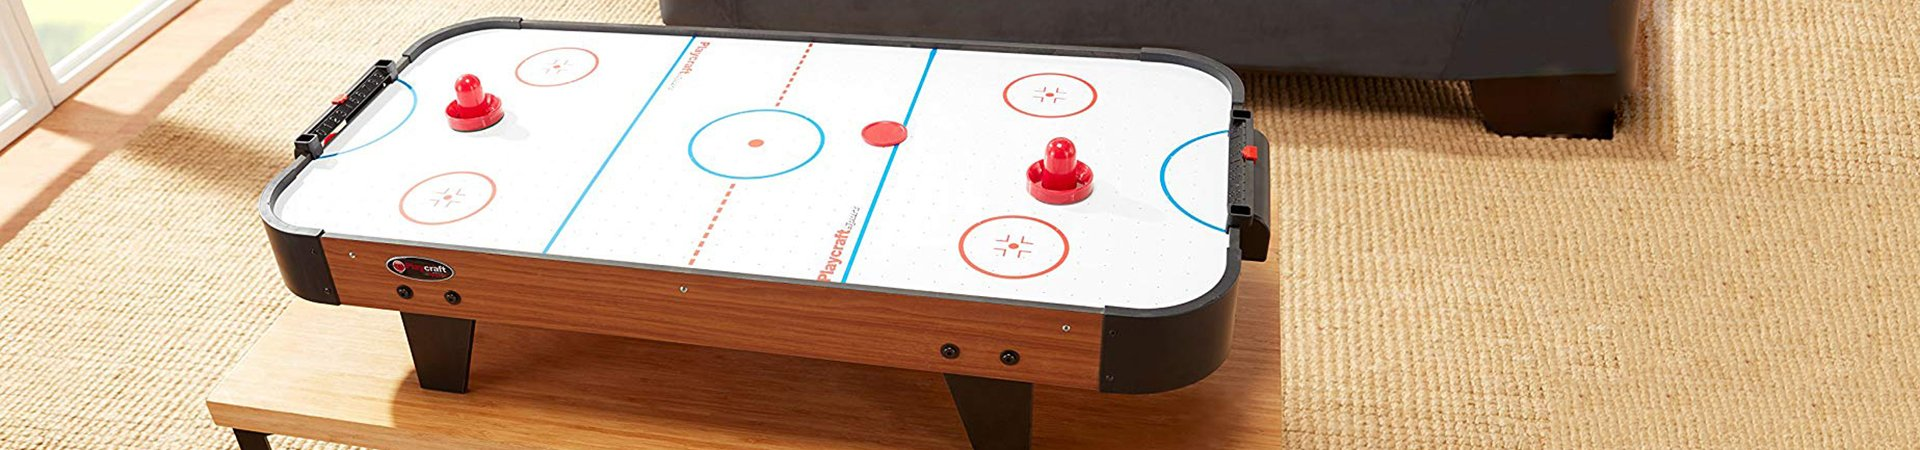 Best Mini Air Hockey Tables Reviewed in Detail